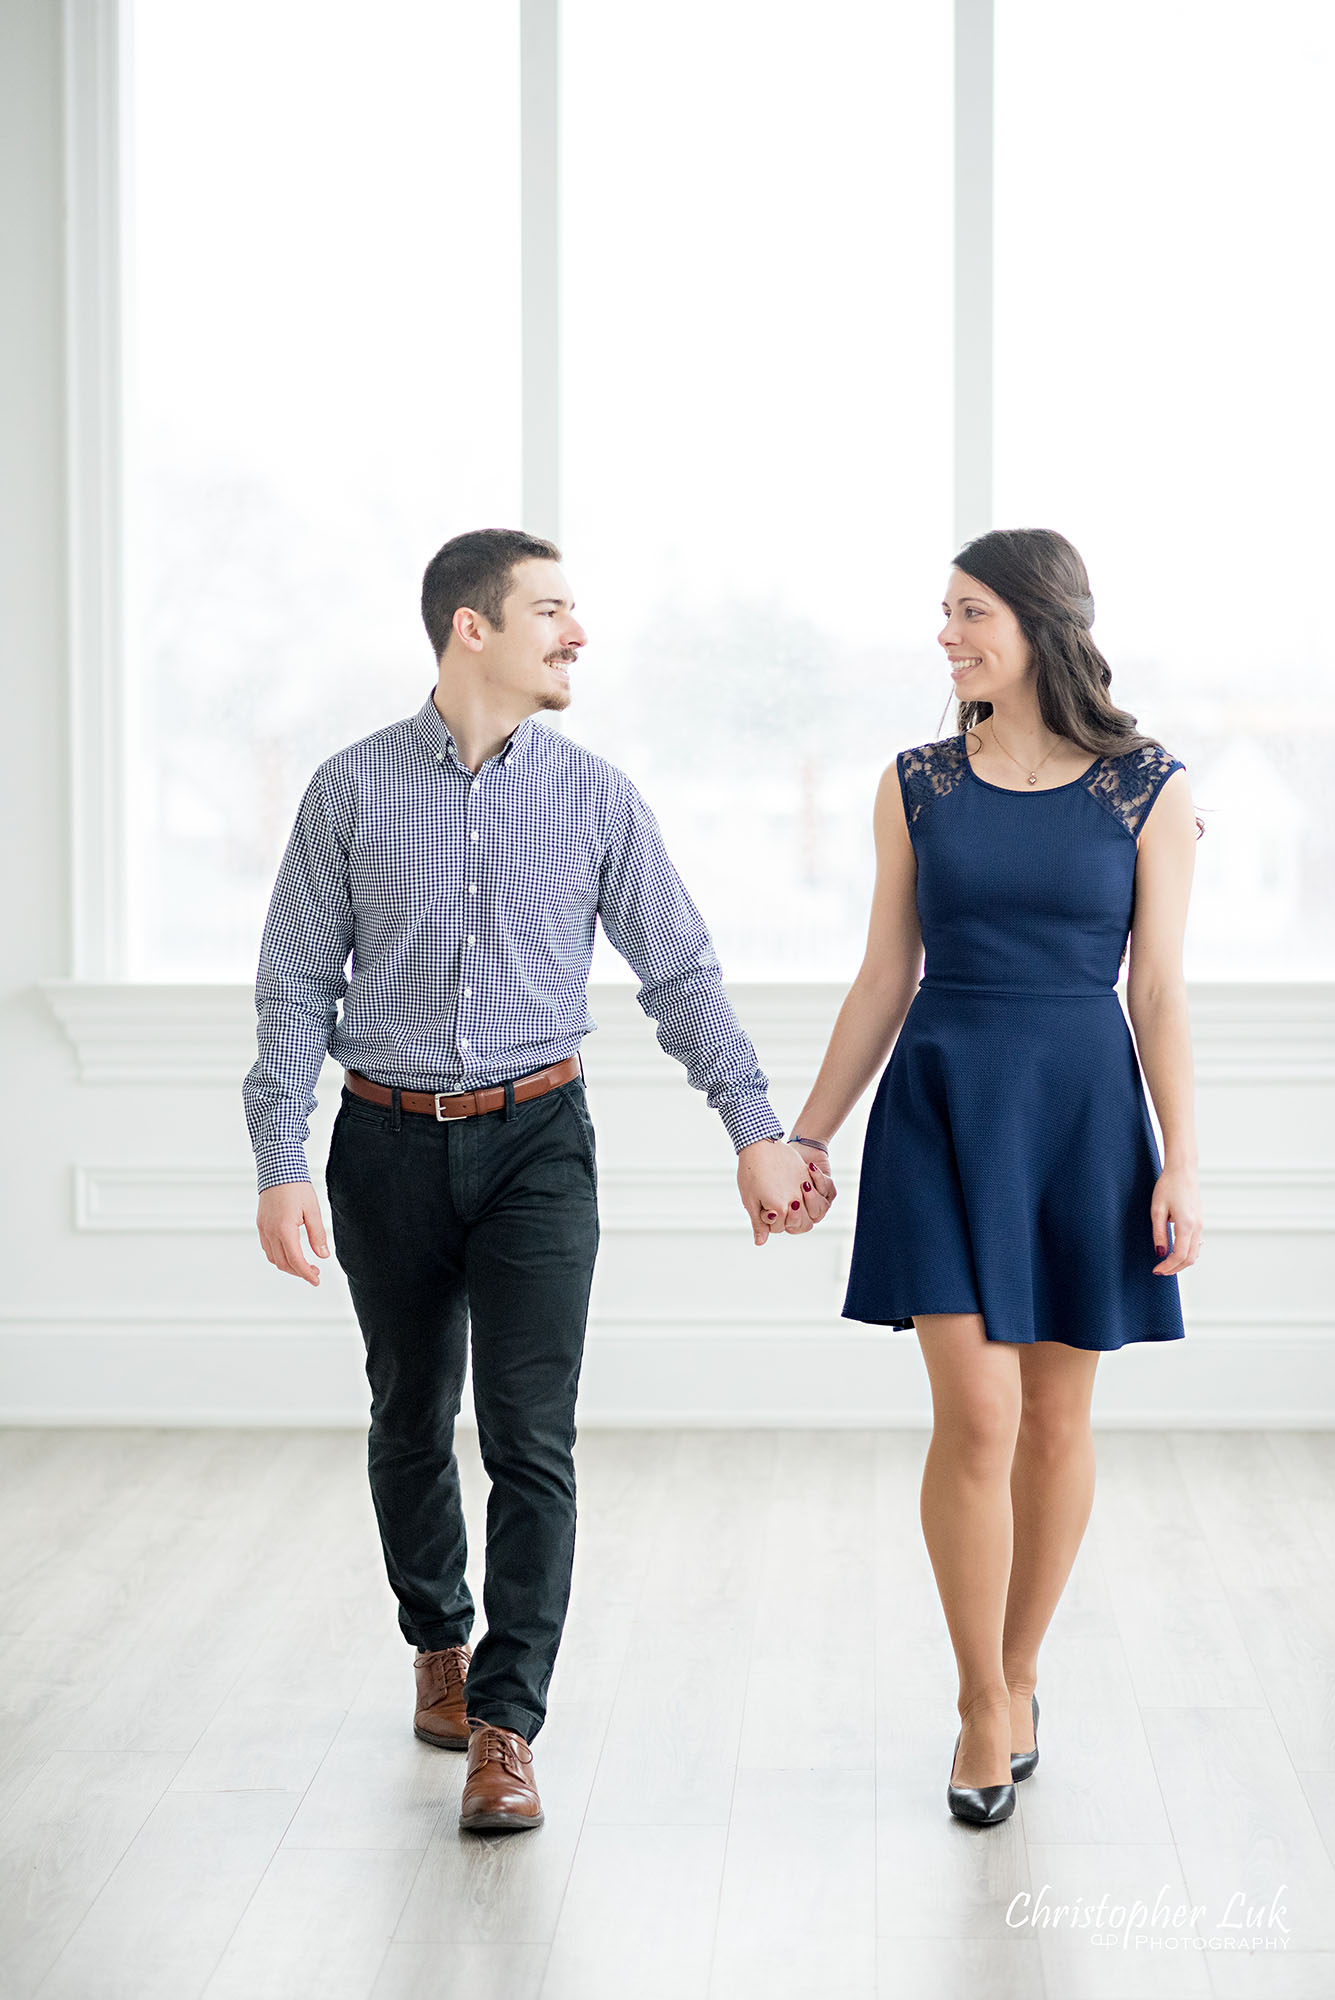 Christopher Luk Toronto Wedding Photographer Mint Room Studios Conservatory Engagement Session Winter Indoor Natural Light Candid Photojournalistic Bride Groom Holding Hands Walking Together Smile Vertical